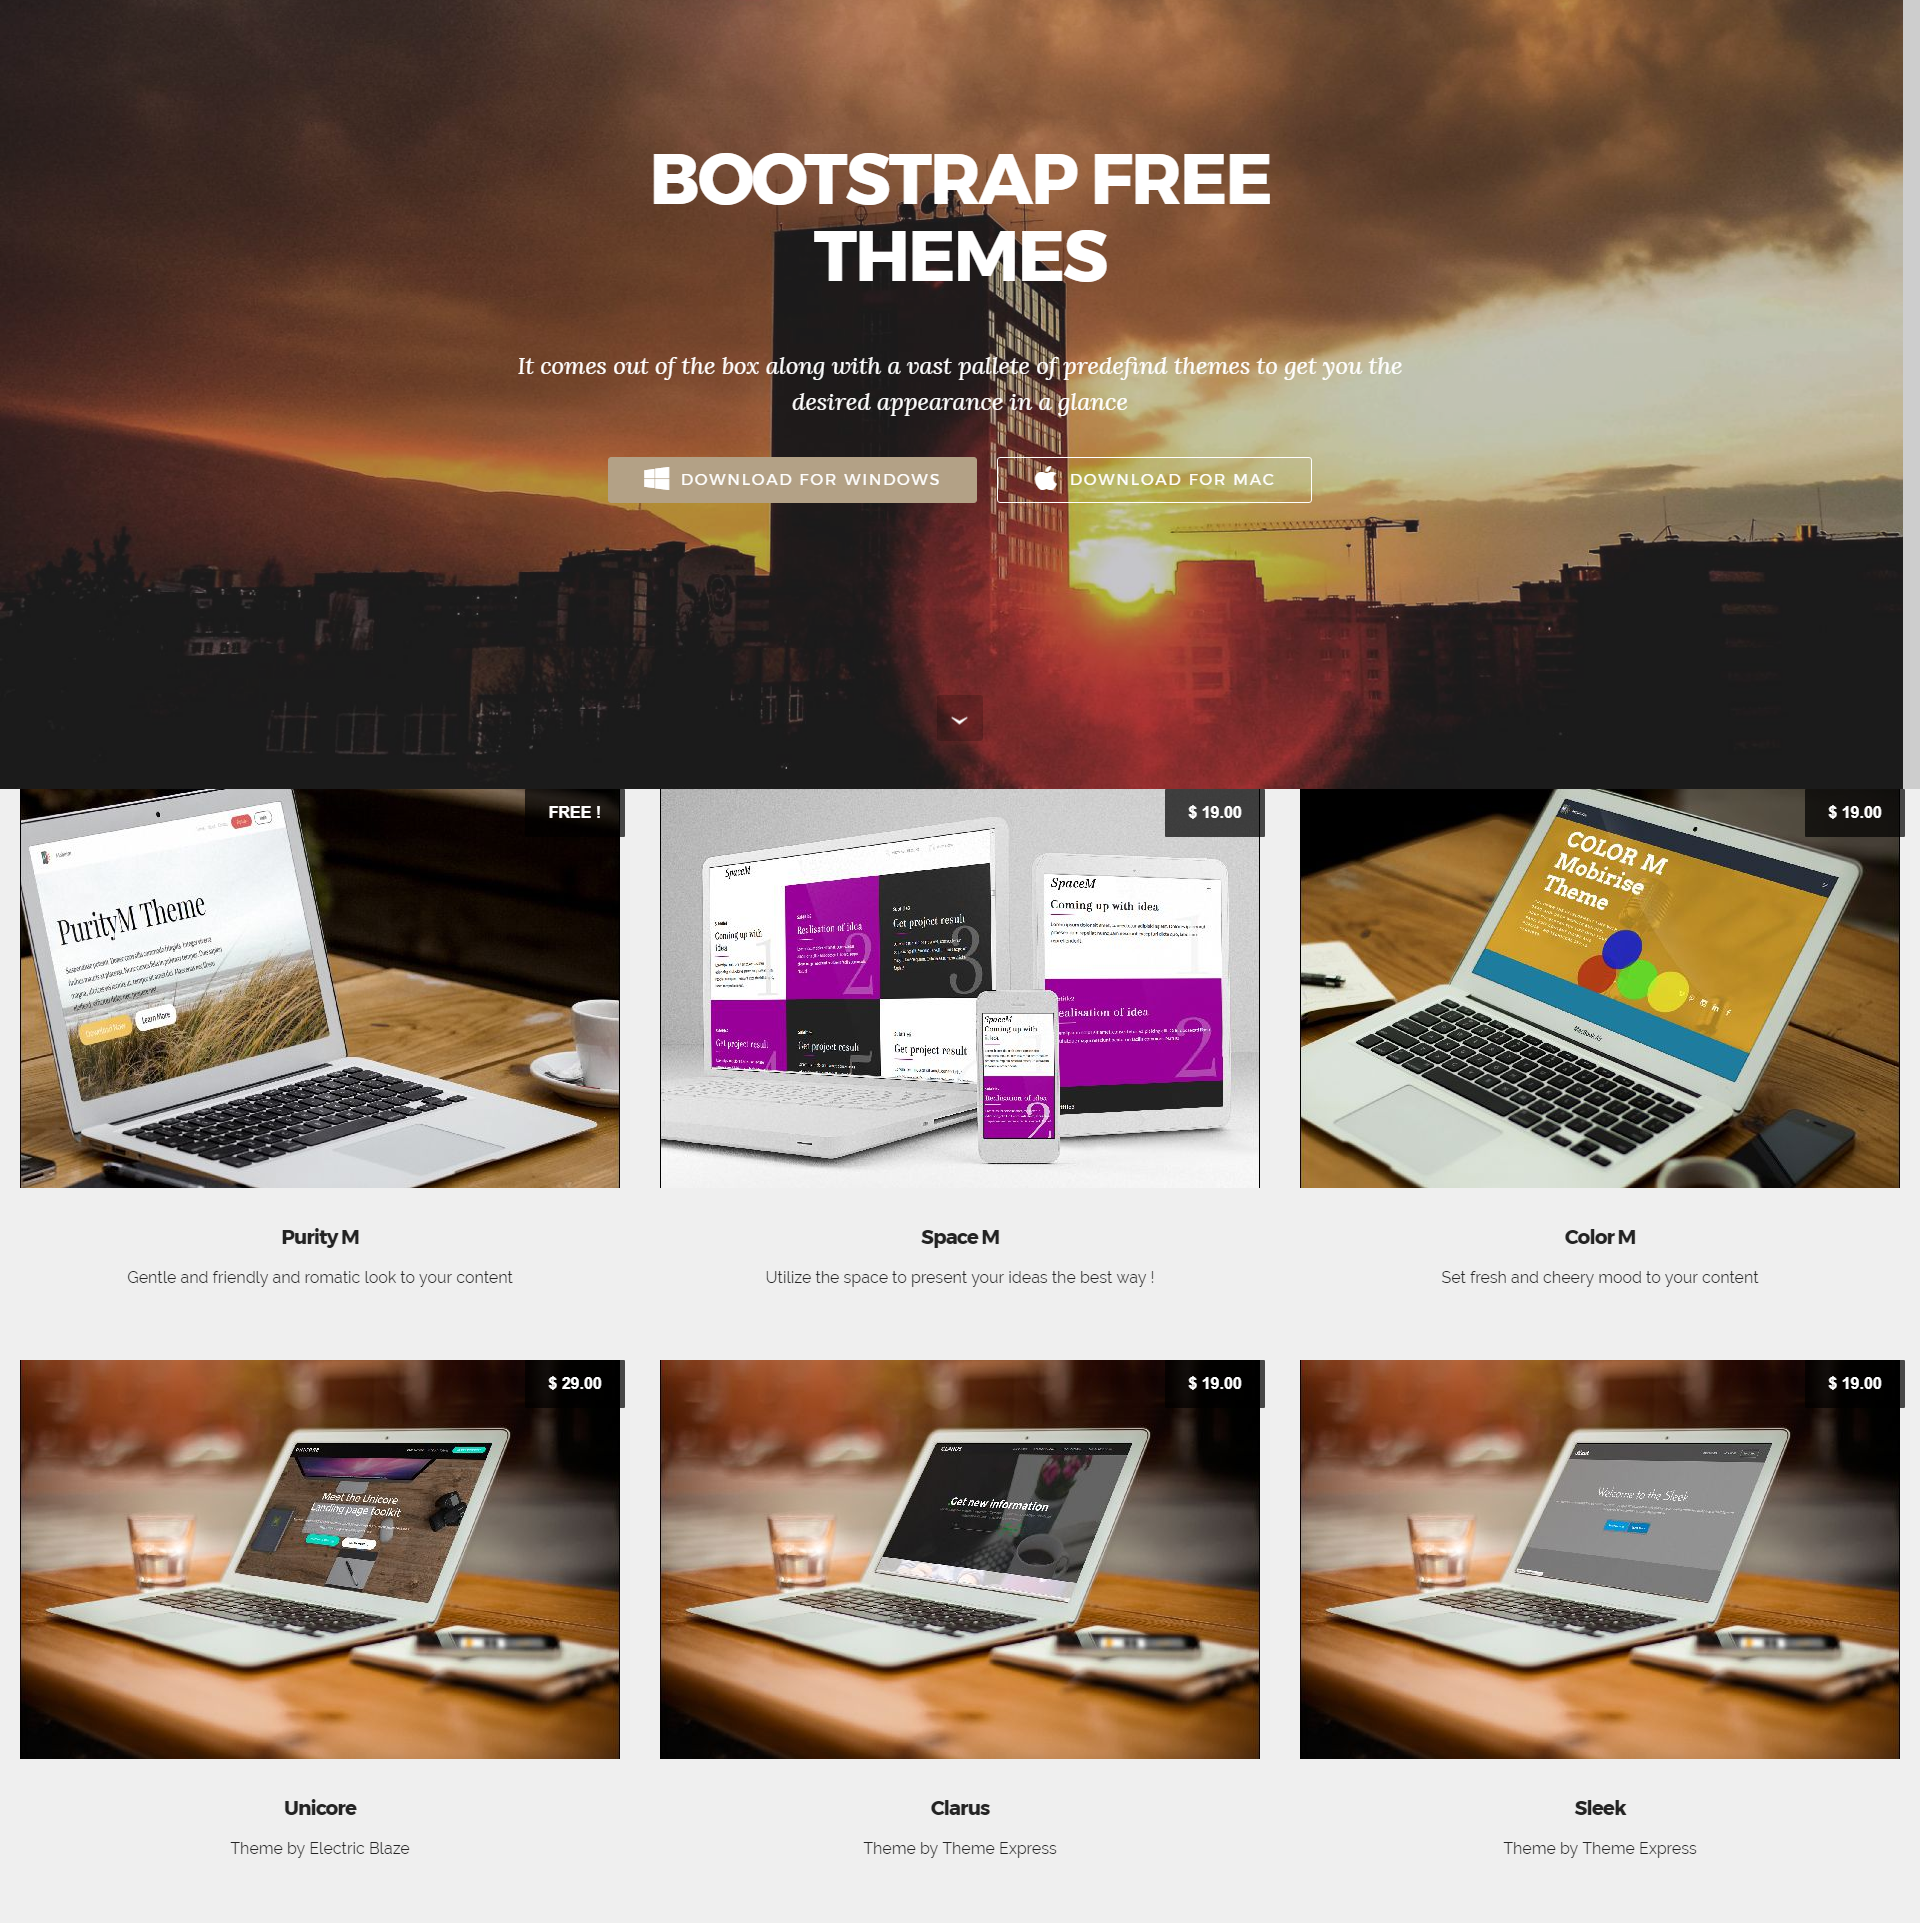 HTML5 Bootstrap Mobile-friendly Themes